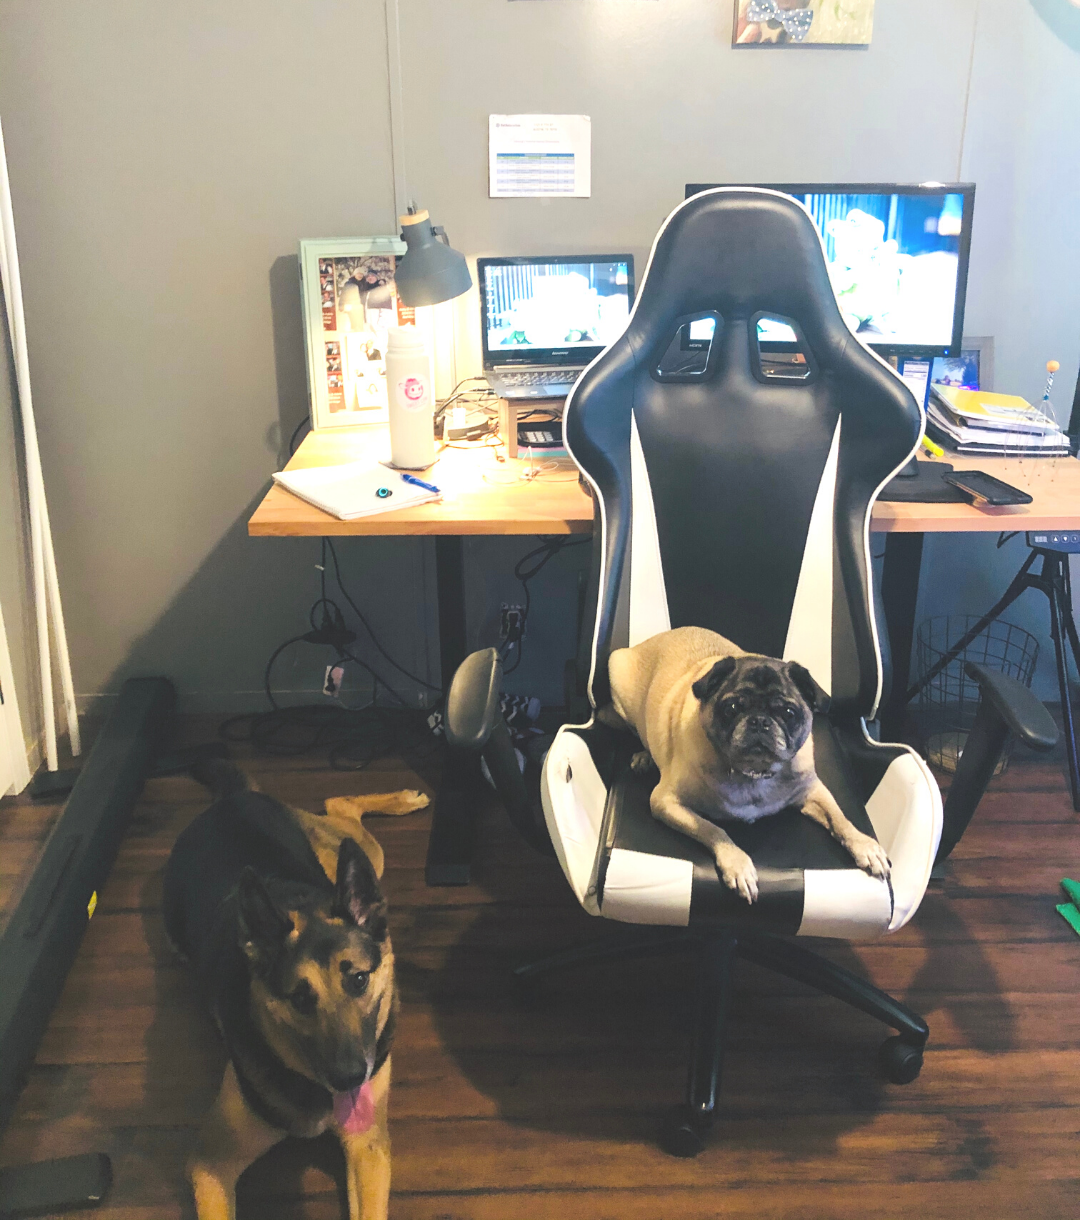 Pug and German shepherd help their mom, petrelocation consultant Kathy, work from home